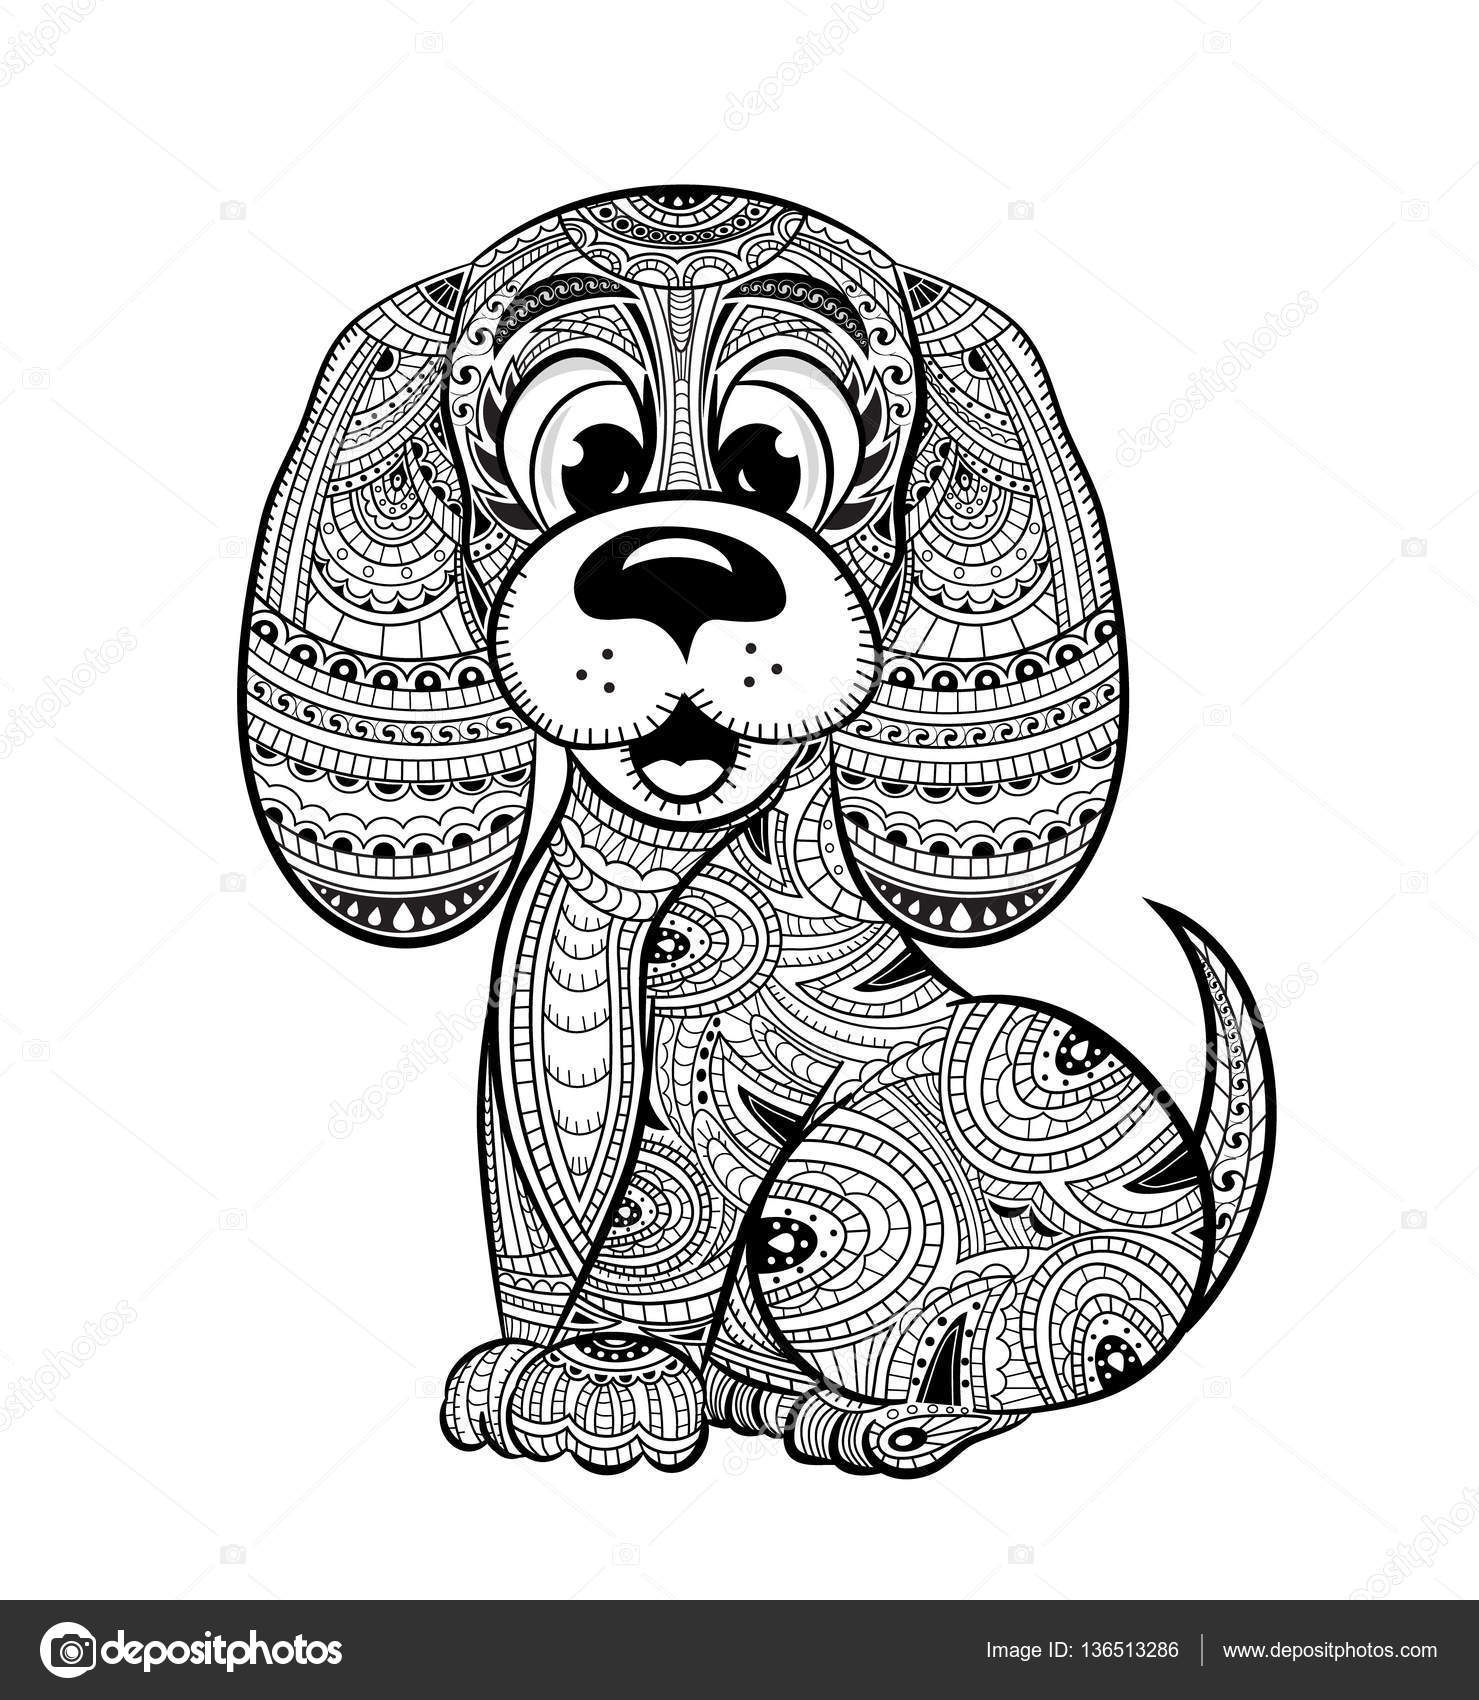 The stress coloring book - Dog Anti Stress Coloring Book For Adults Stock Illustration